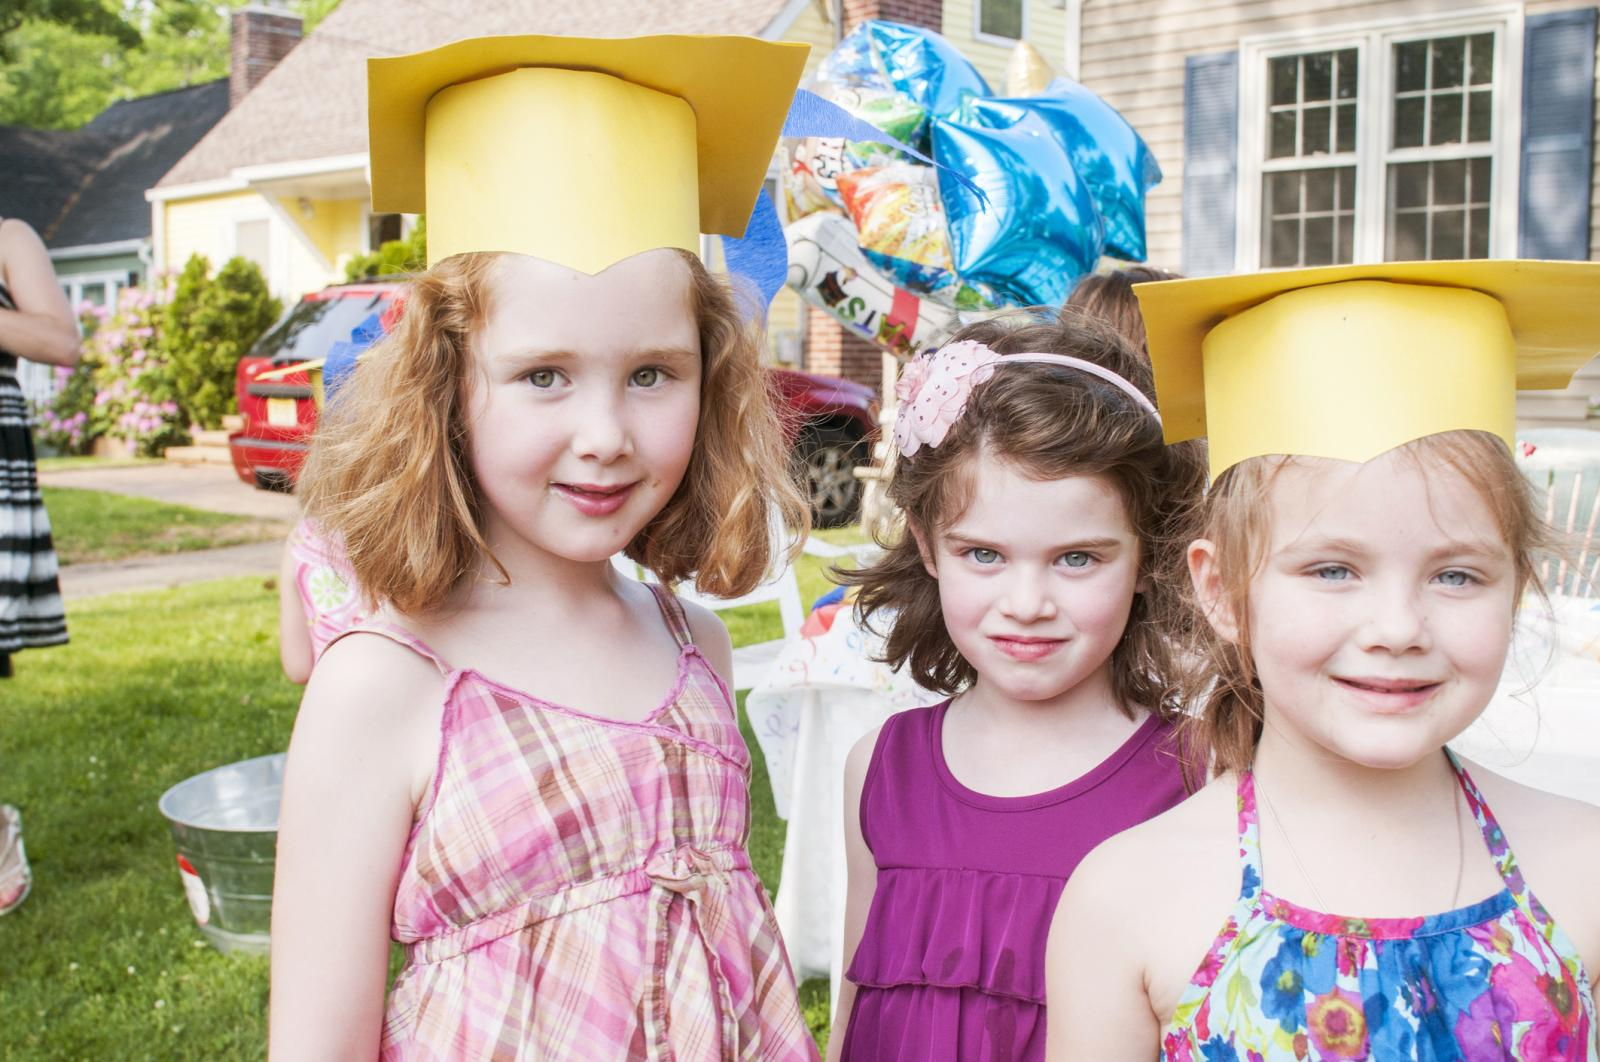 Preschool Graduation Themes | LoveToKnow